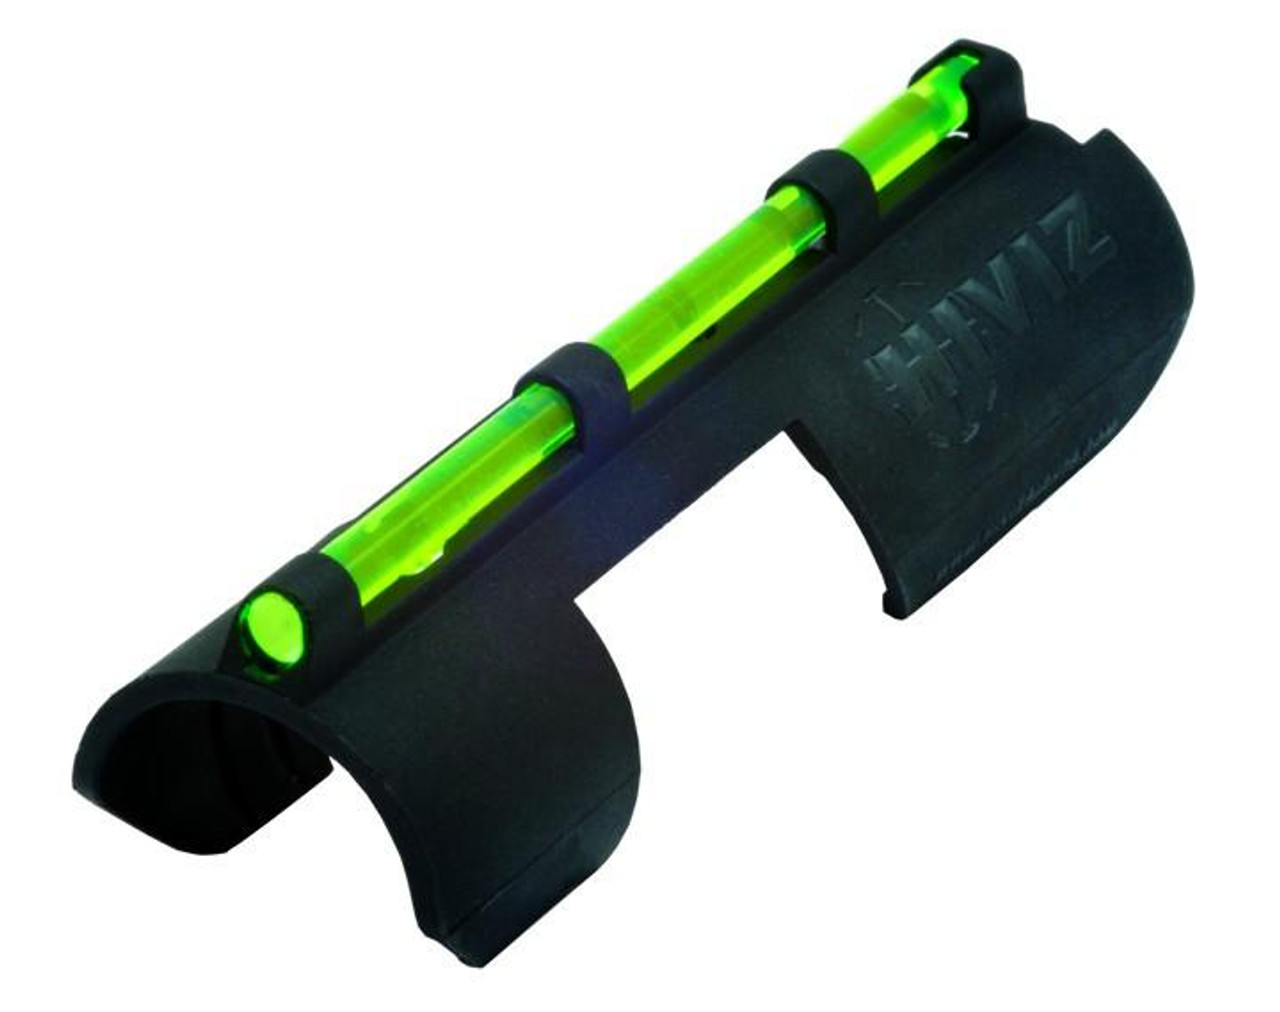 HI-VIZ MPB-TAC Tactical Fibre Optic Shotgun Sight